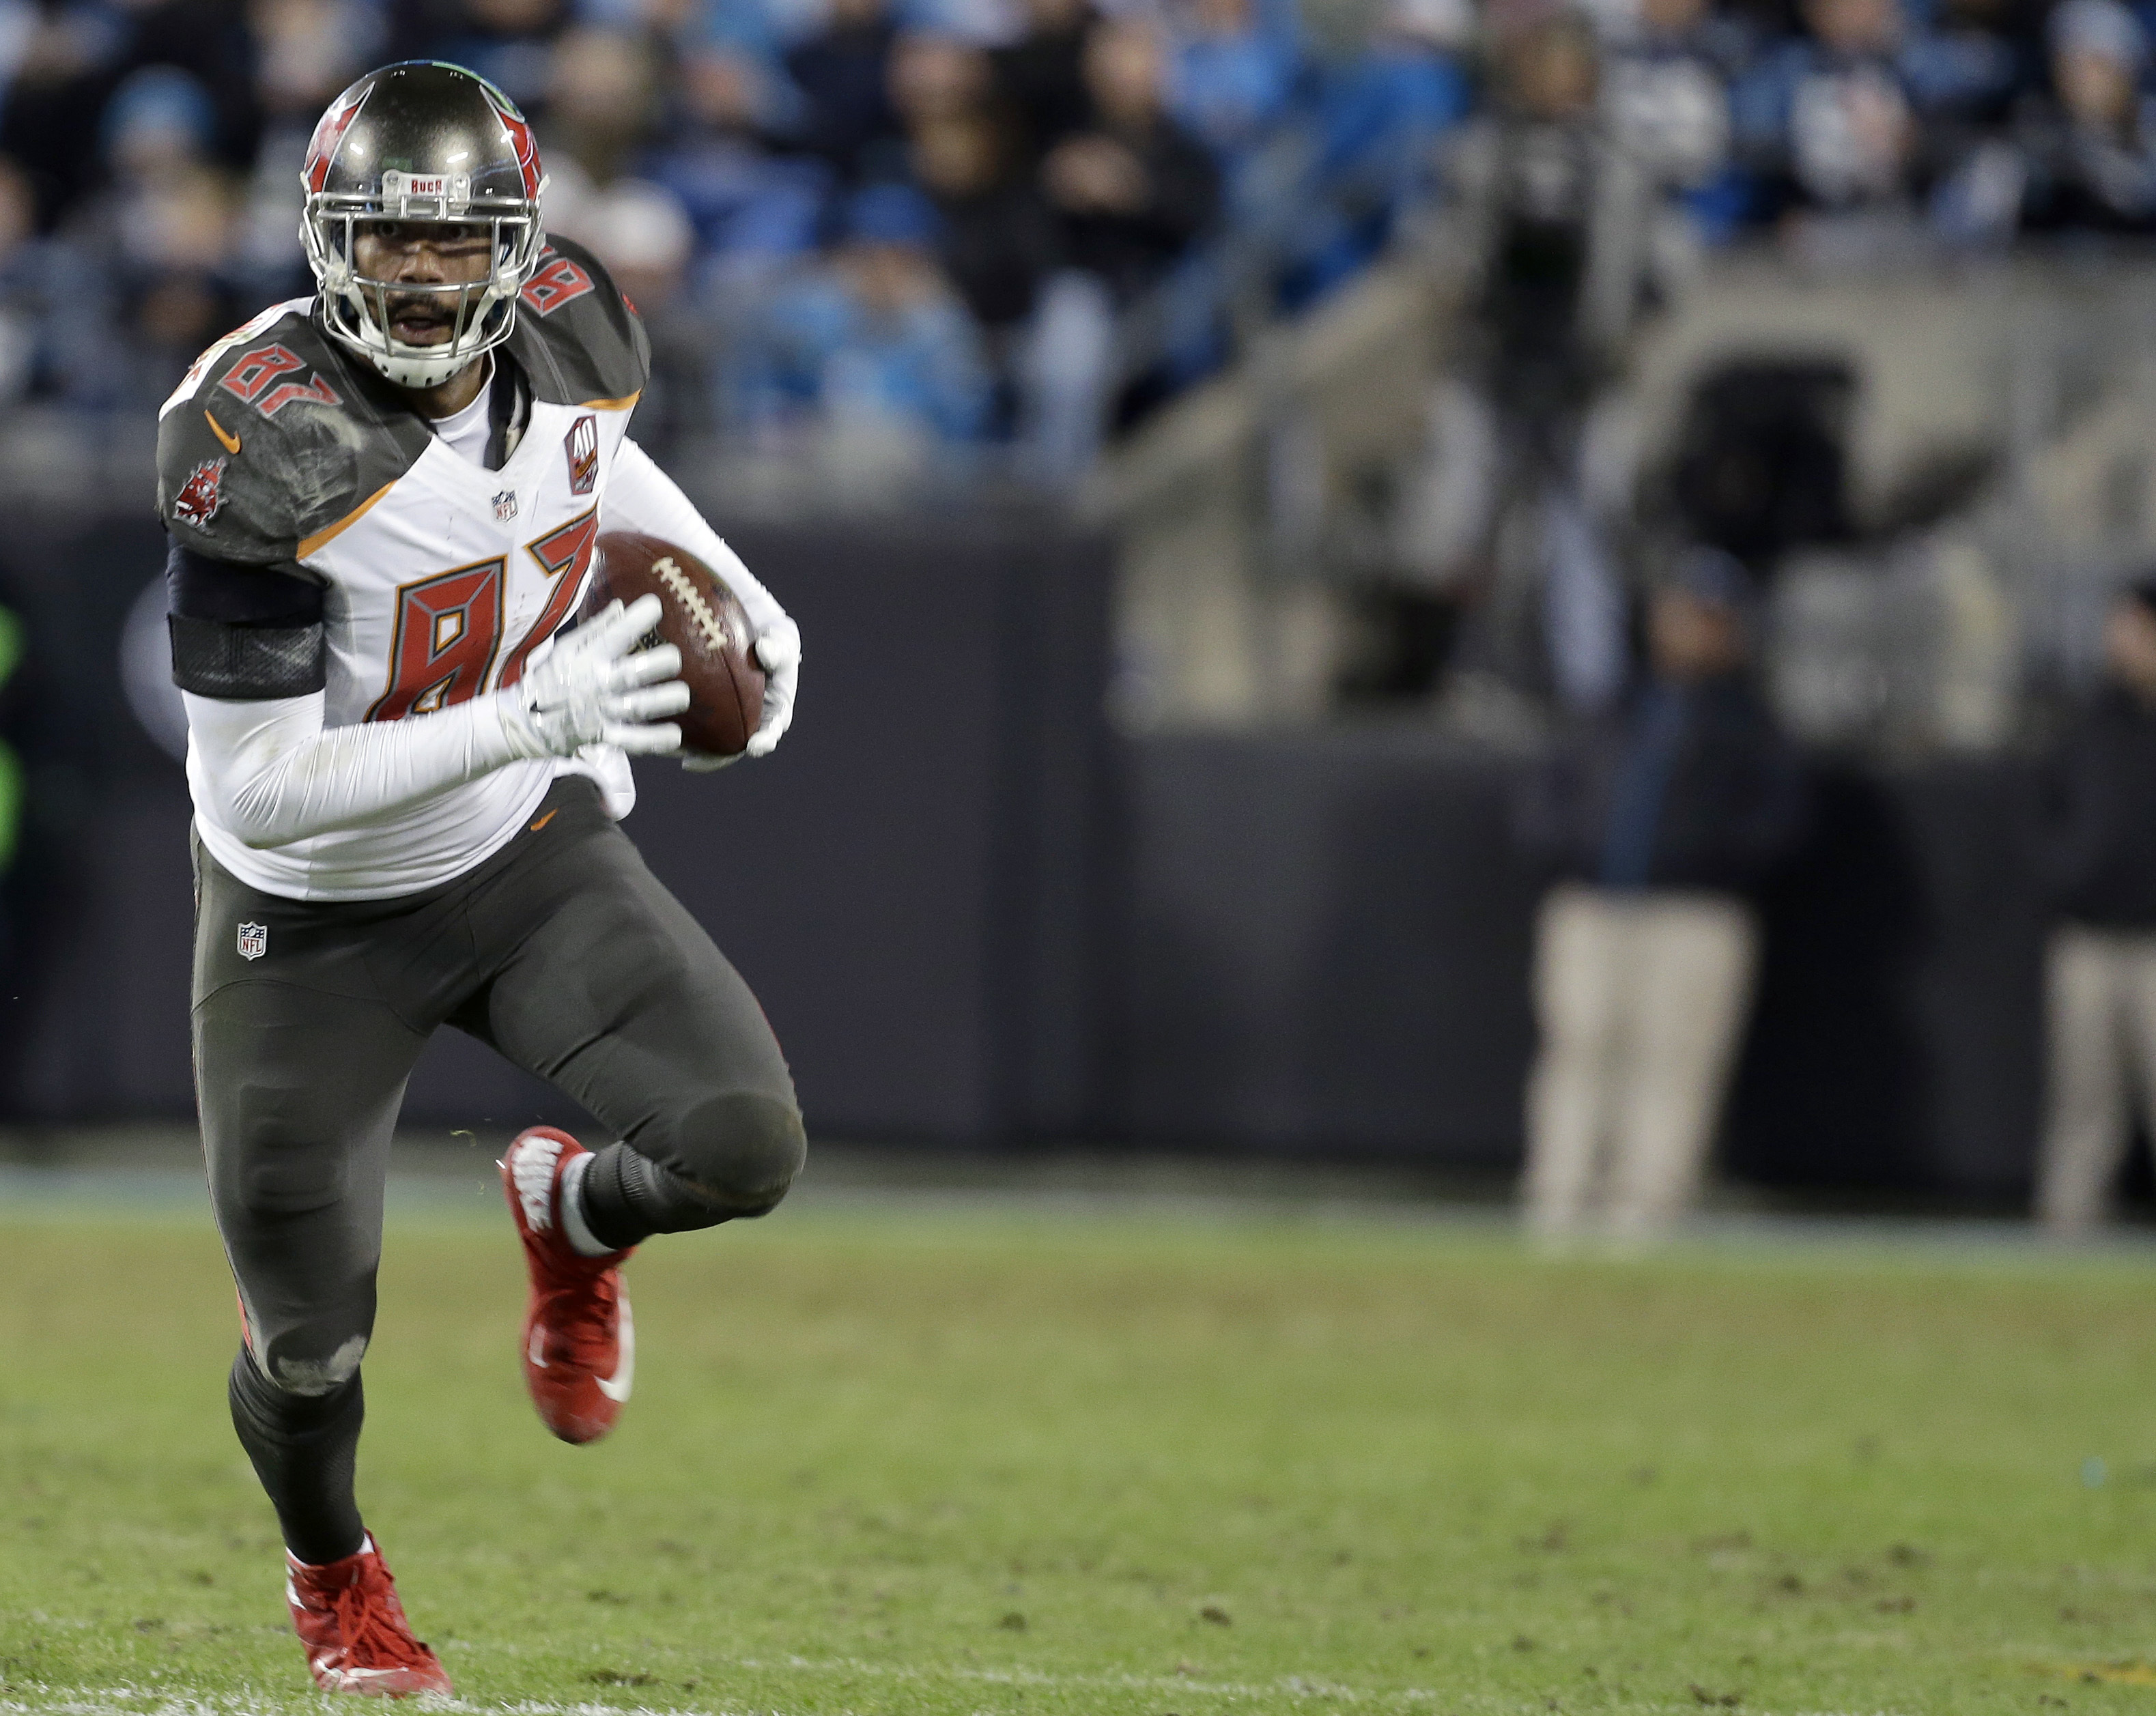 FILE - In this Jan, 3, 2016, file photo, Tampa Bay Buccaneers' Austin Seferian-Jenkins (87) runs all alone against the Carolina Panthers during the second half of an NFL football game in Charlotte, N.C. The New York Jets have claimed tight end  Seferian-J